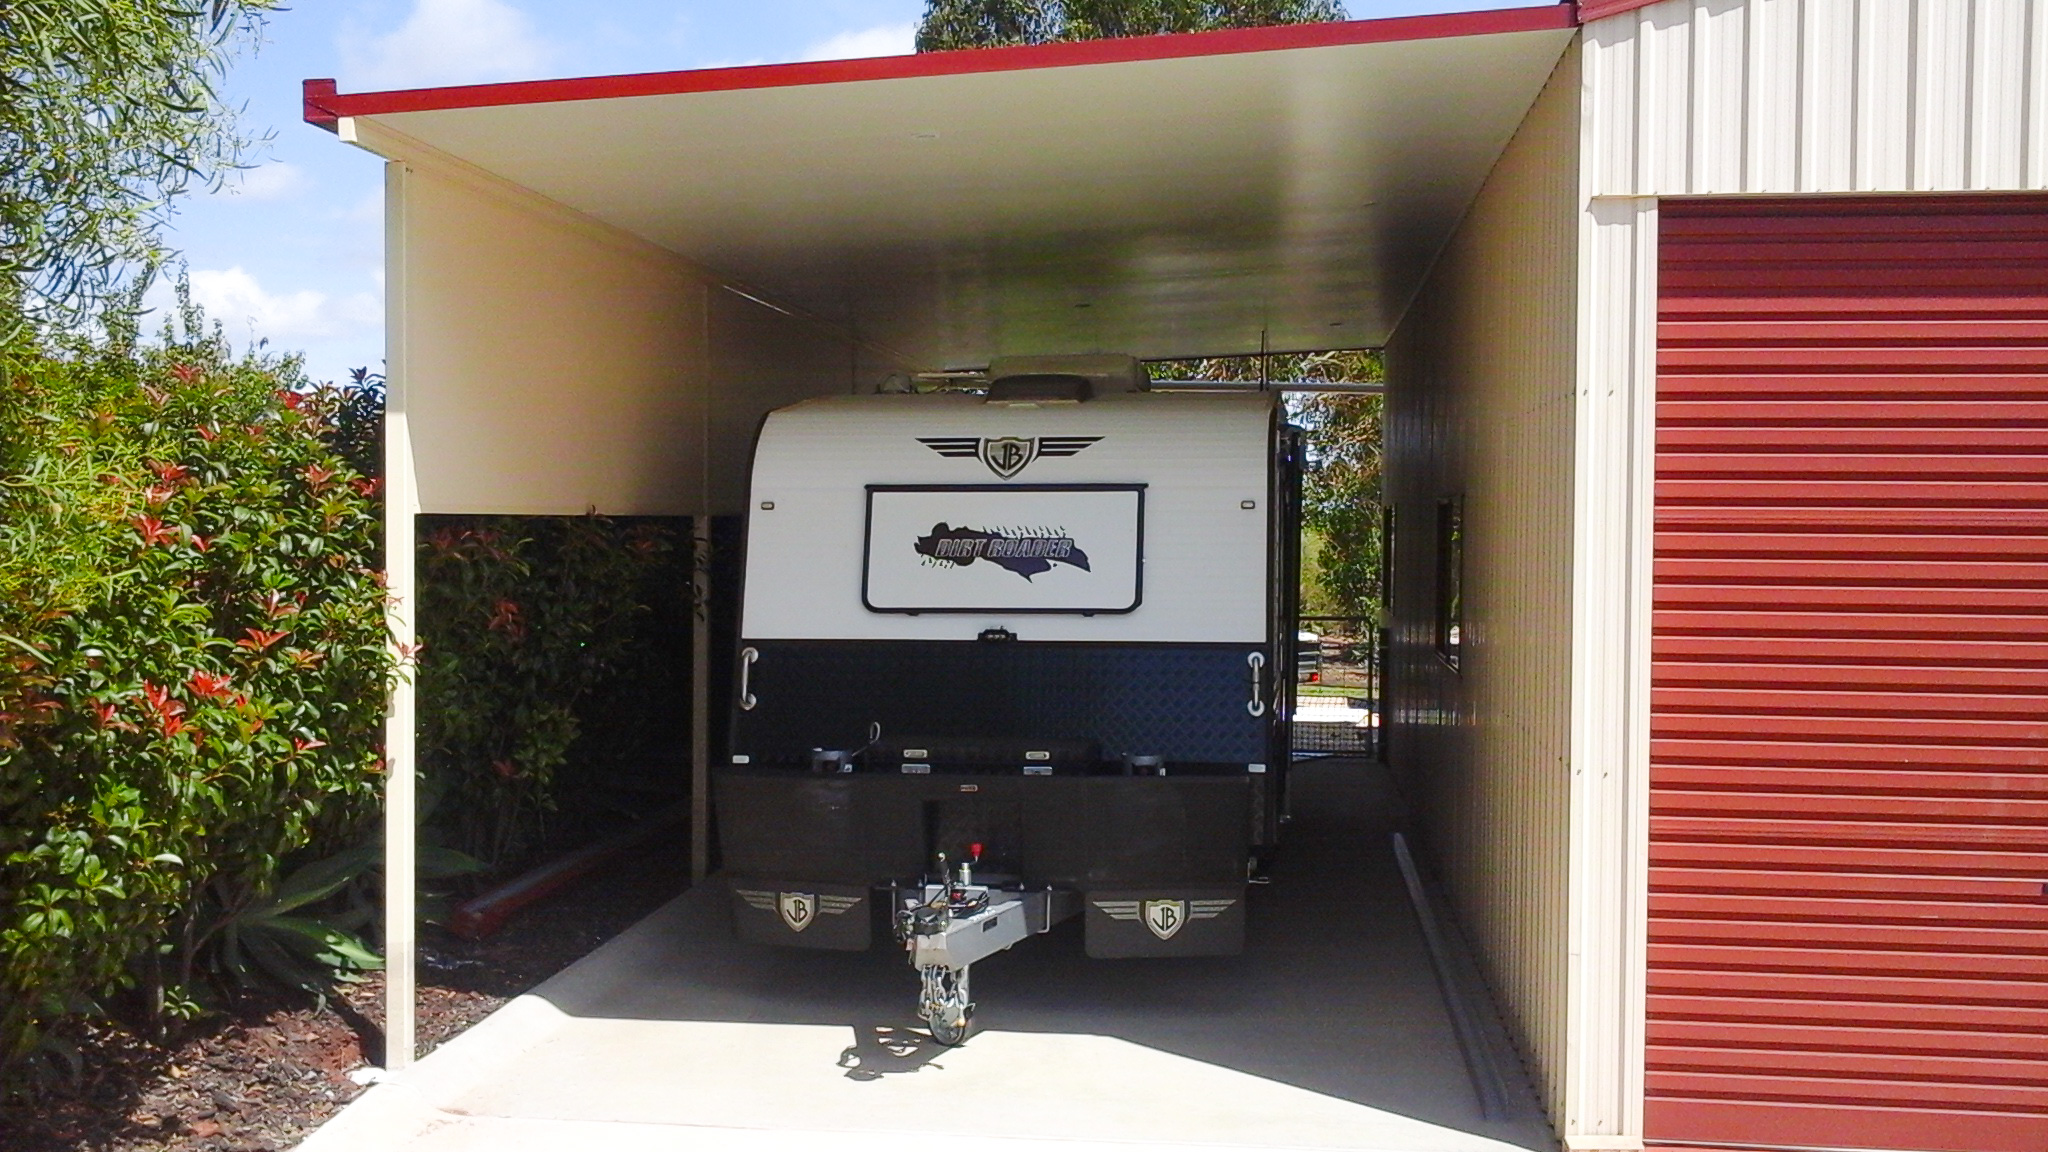 Is It Future Proof? - Carports are housing your pride and joy. What can you foresee happening over the next couple of years that you can prepare for? There's a good chance a slightly bigger carport will be just as beneficial.